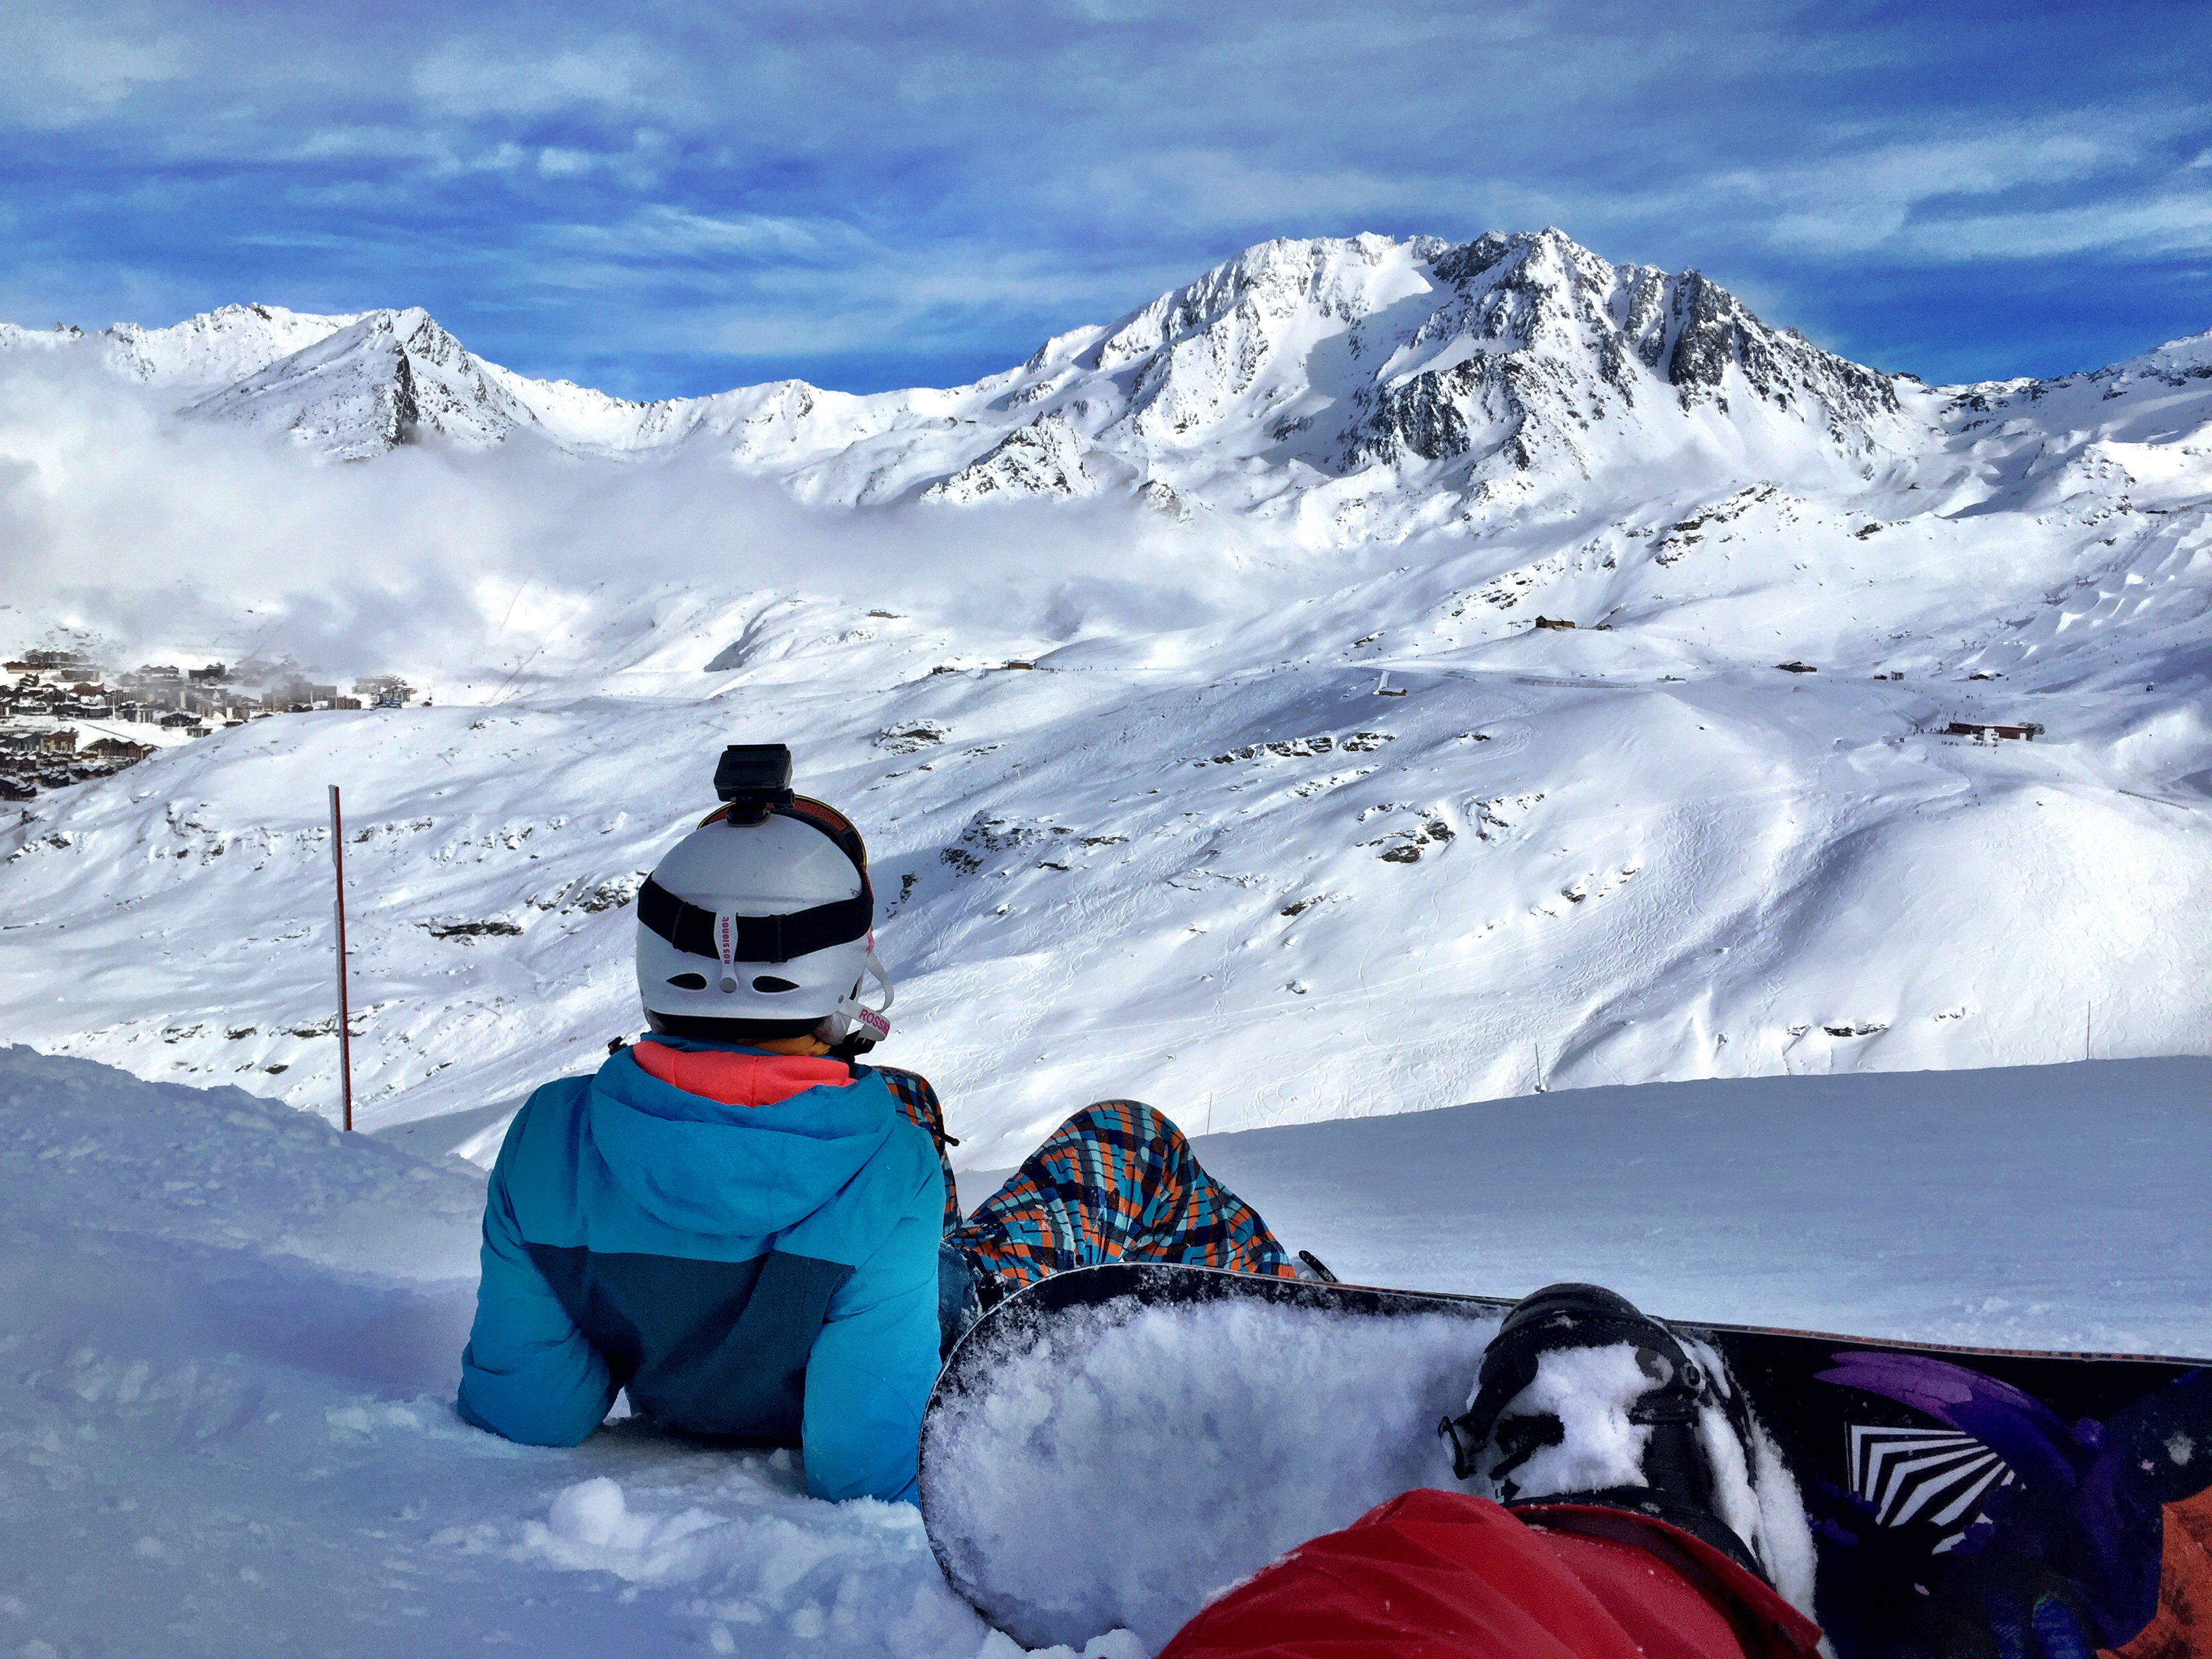 Val Thorens, Courchevel, Meribel – Fransa Alpleri